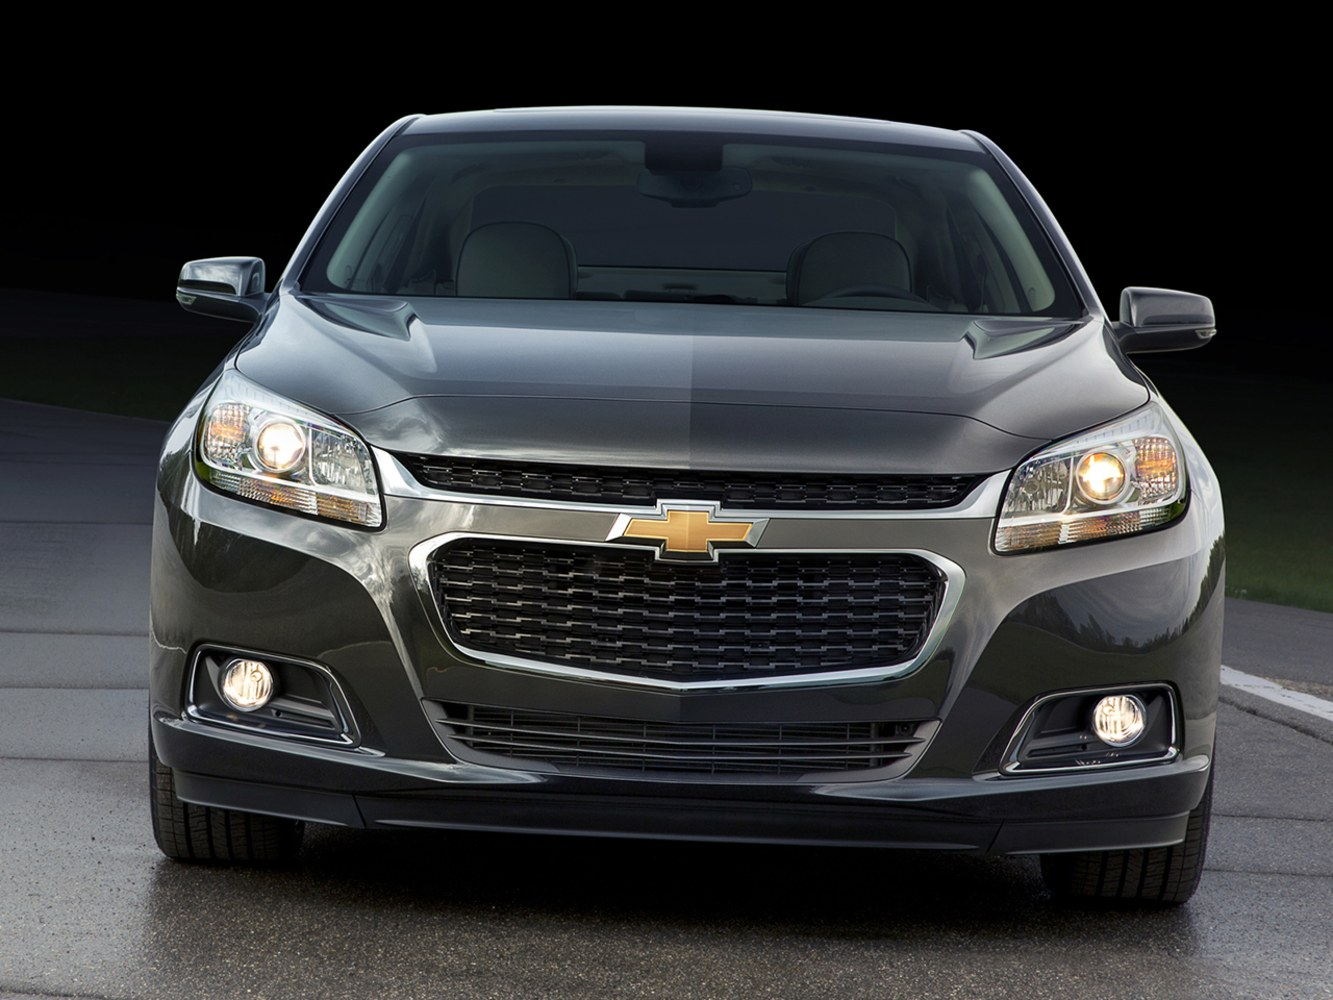 Gm Recalls Chevy Malibu Sedans Over Wiring Computer Problems